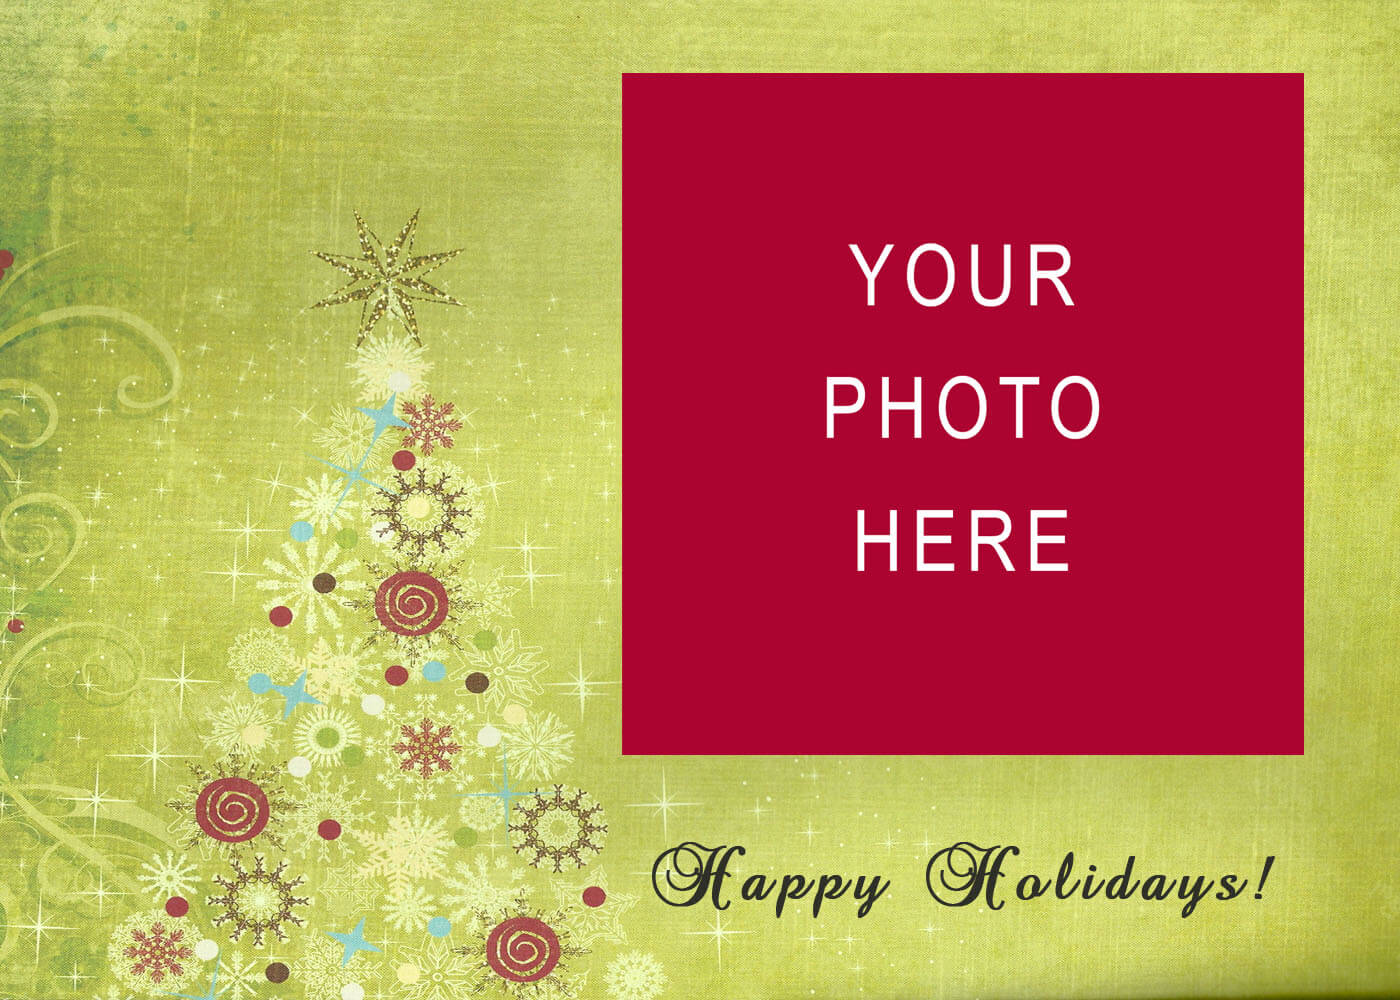 11 Christmas Card Templates Free Download Images - Christmas In Christmas Photo Cards Templates Free Downloads